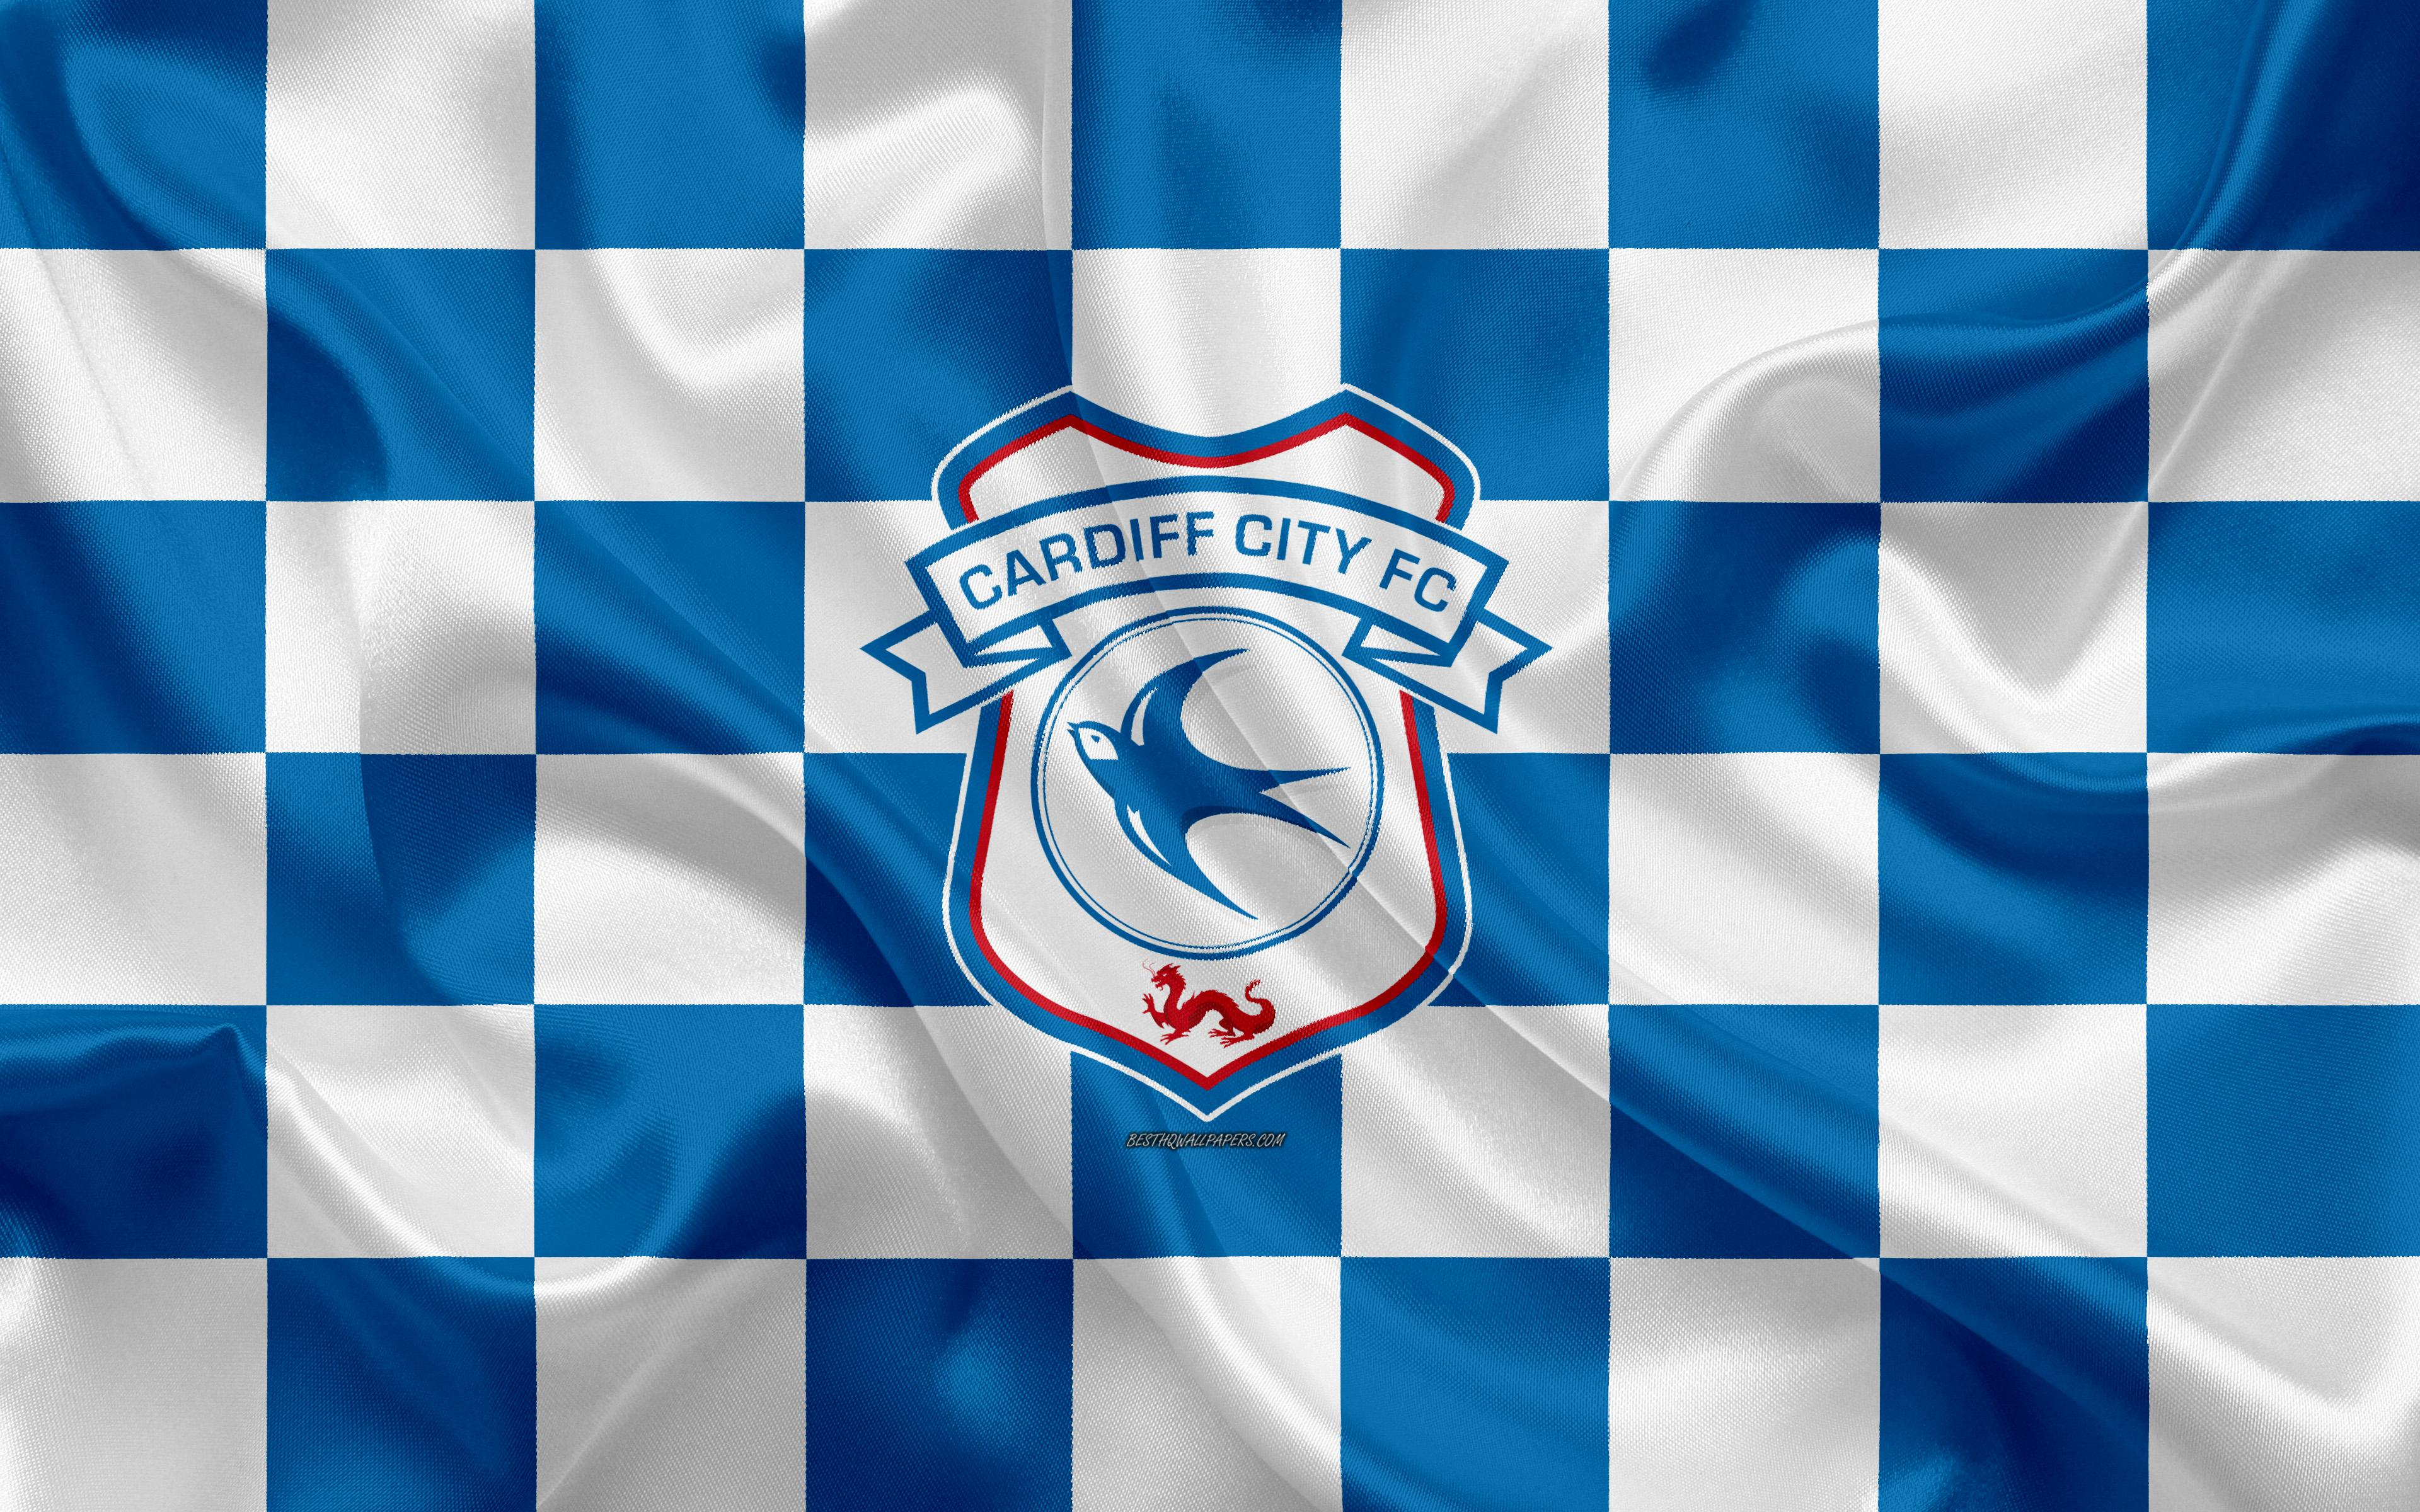 Download wallpapers Cardiff City FC, 4k, logo, creative art, blue ...